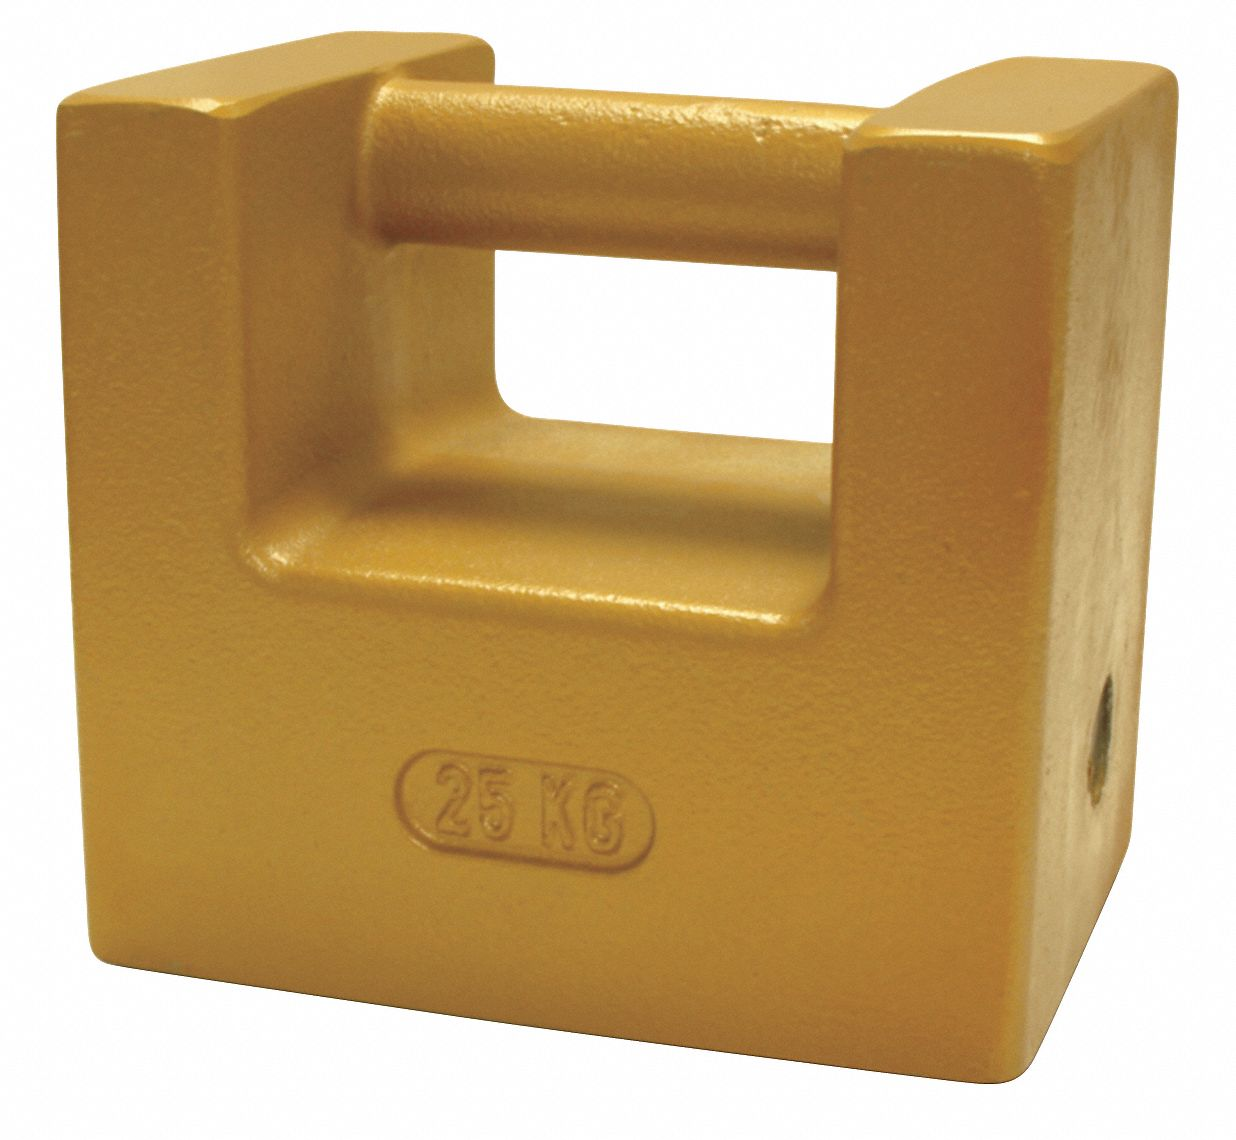 25kg Calibration Weight, Grip Handle Style, Class 6, No Certificate, Cast Iron